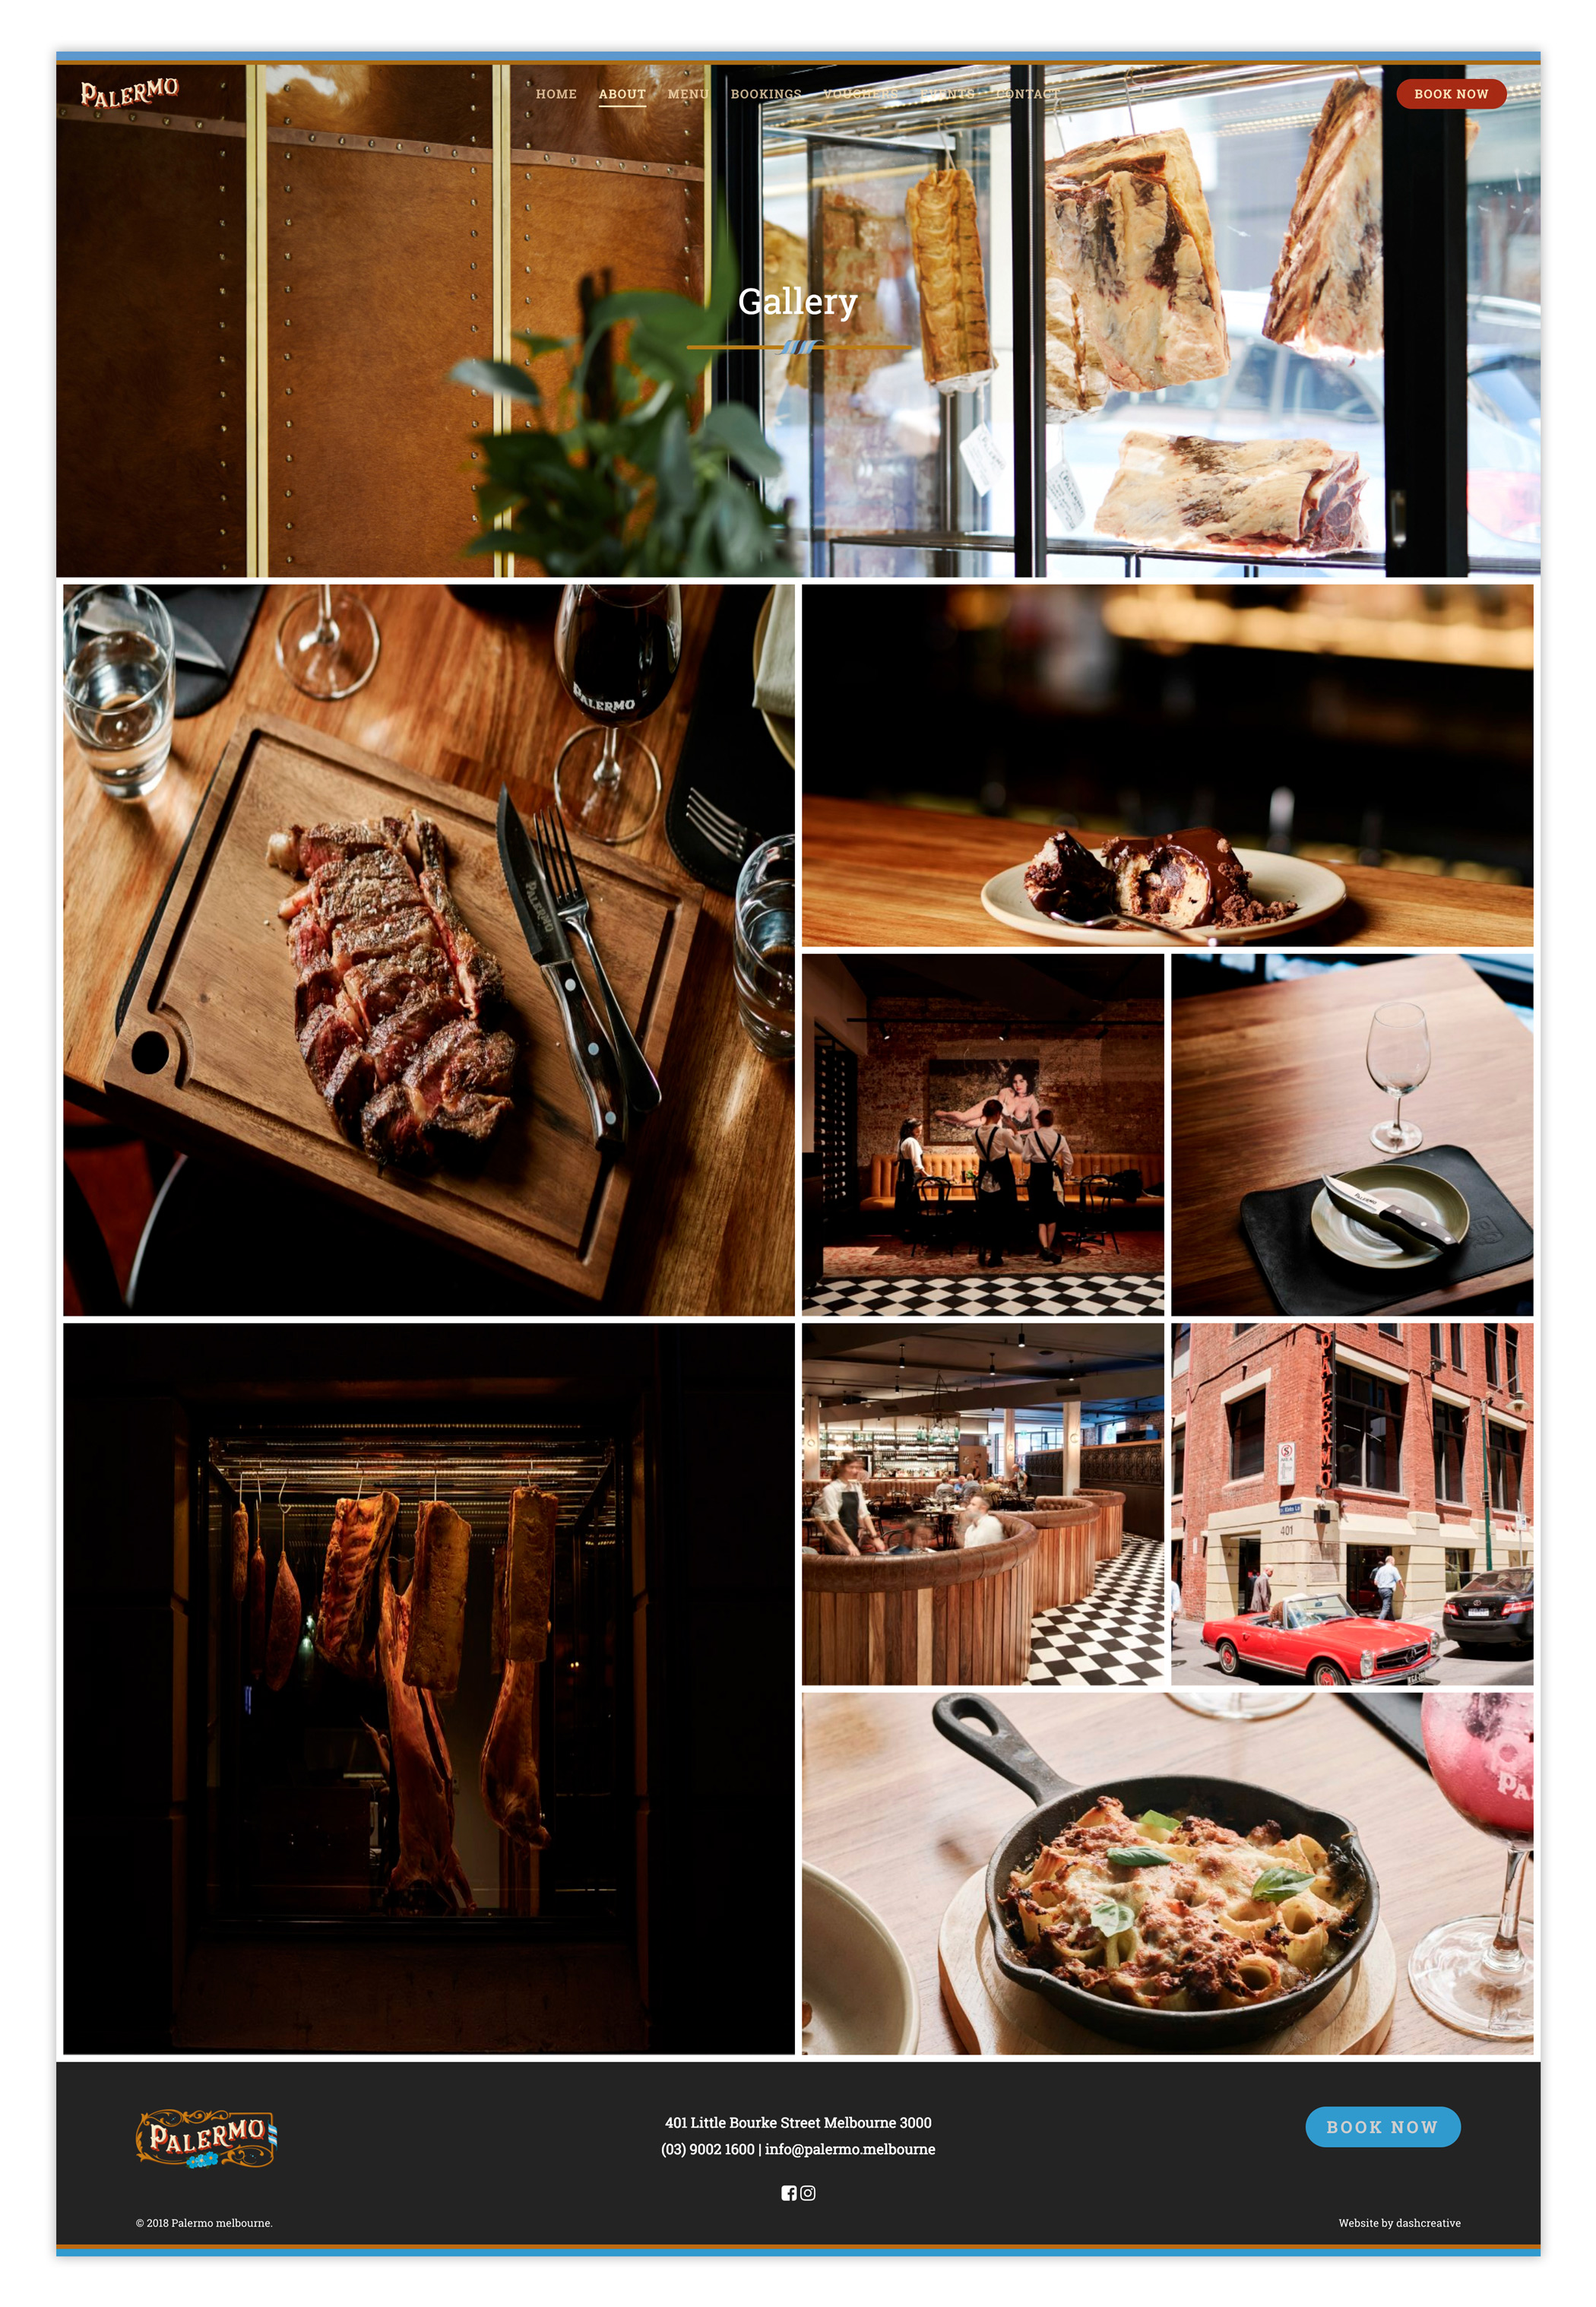 Palermo Steakhouse & Argentinian Restaurant website design